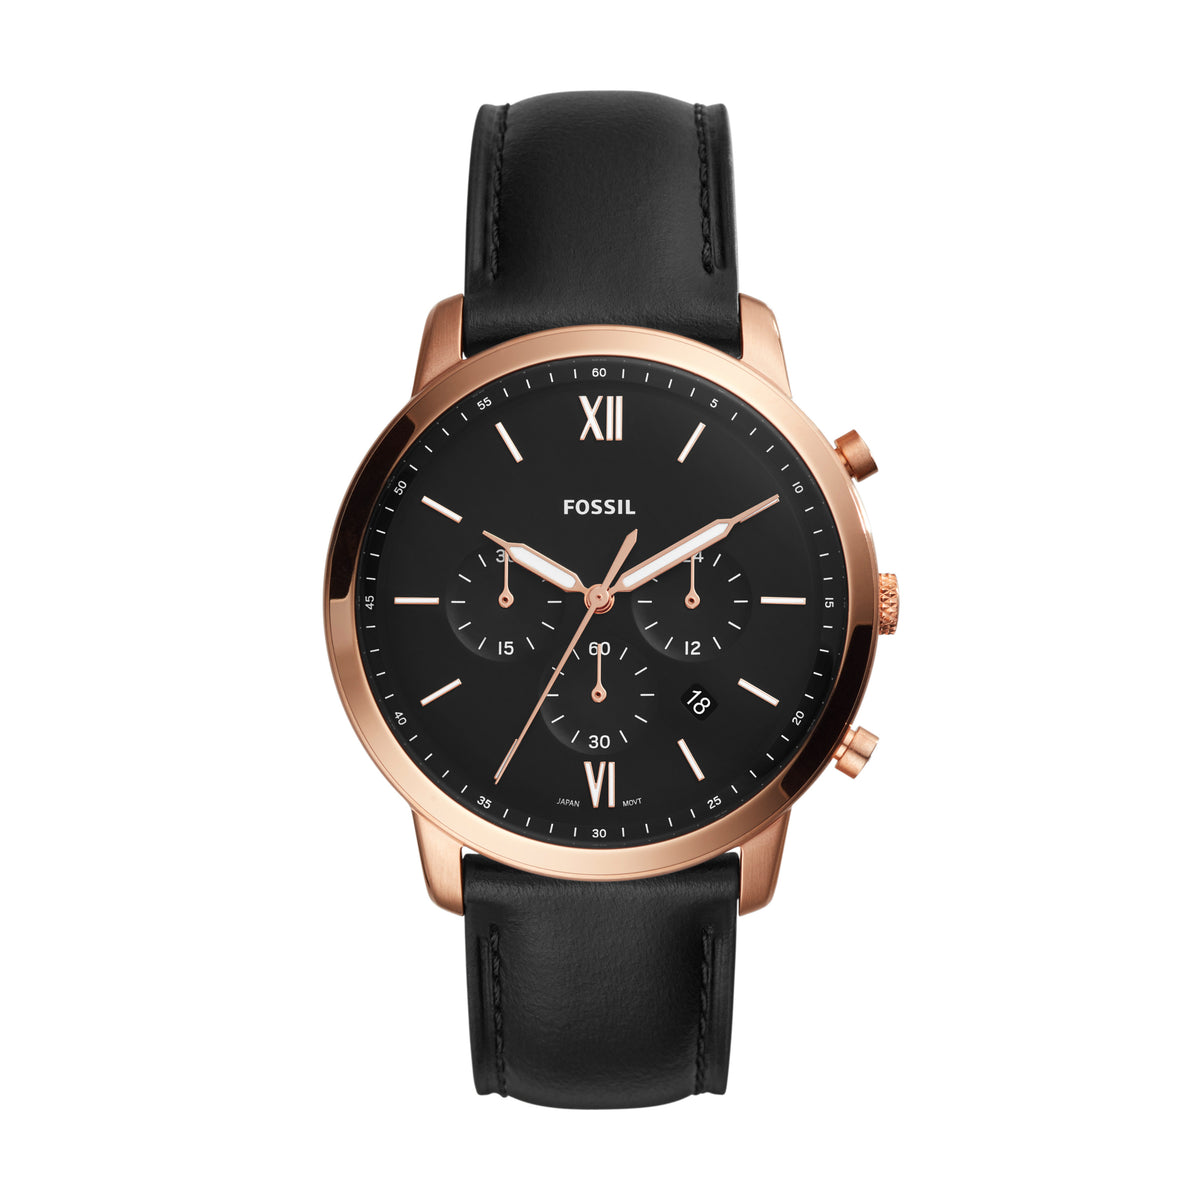 Fossil Watch - Neutra Chronograph Black Leather Watch